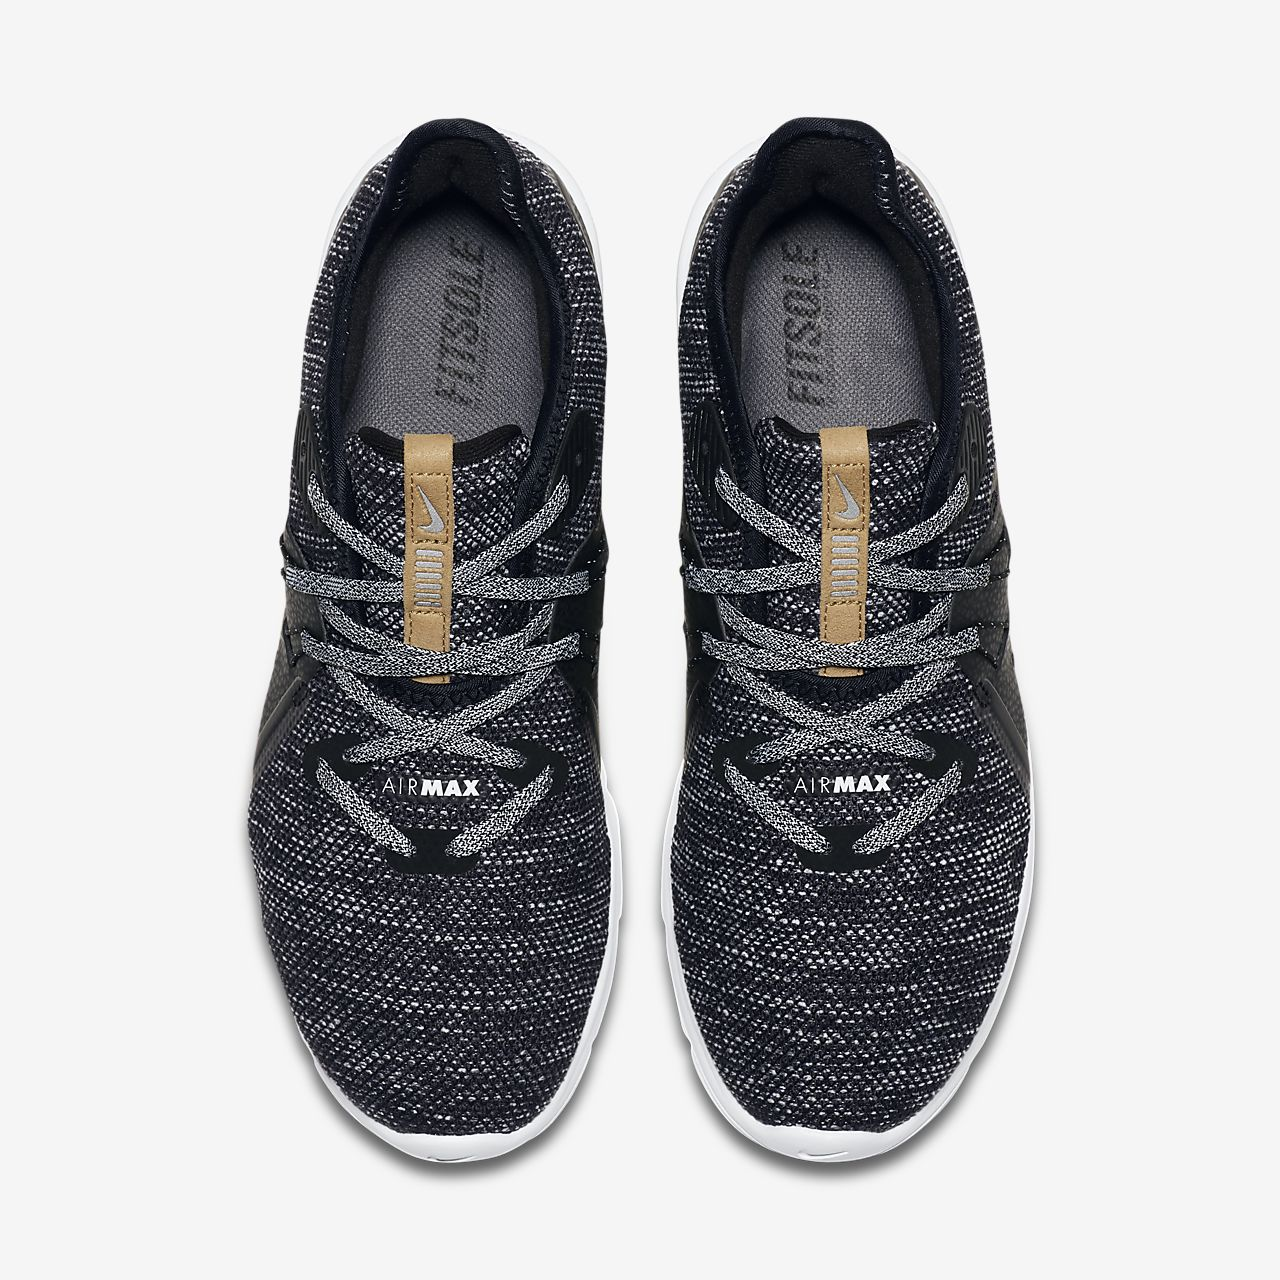 7743e551 Женские кроссовки Nike Air Max Sequent 3. Nike.com RU